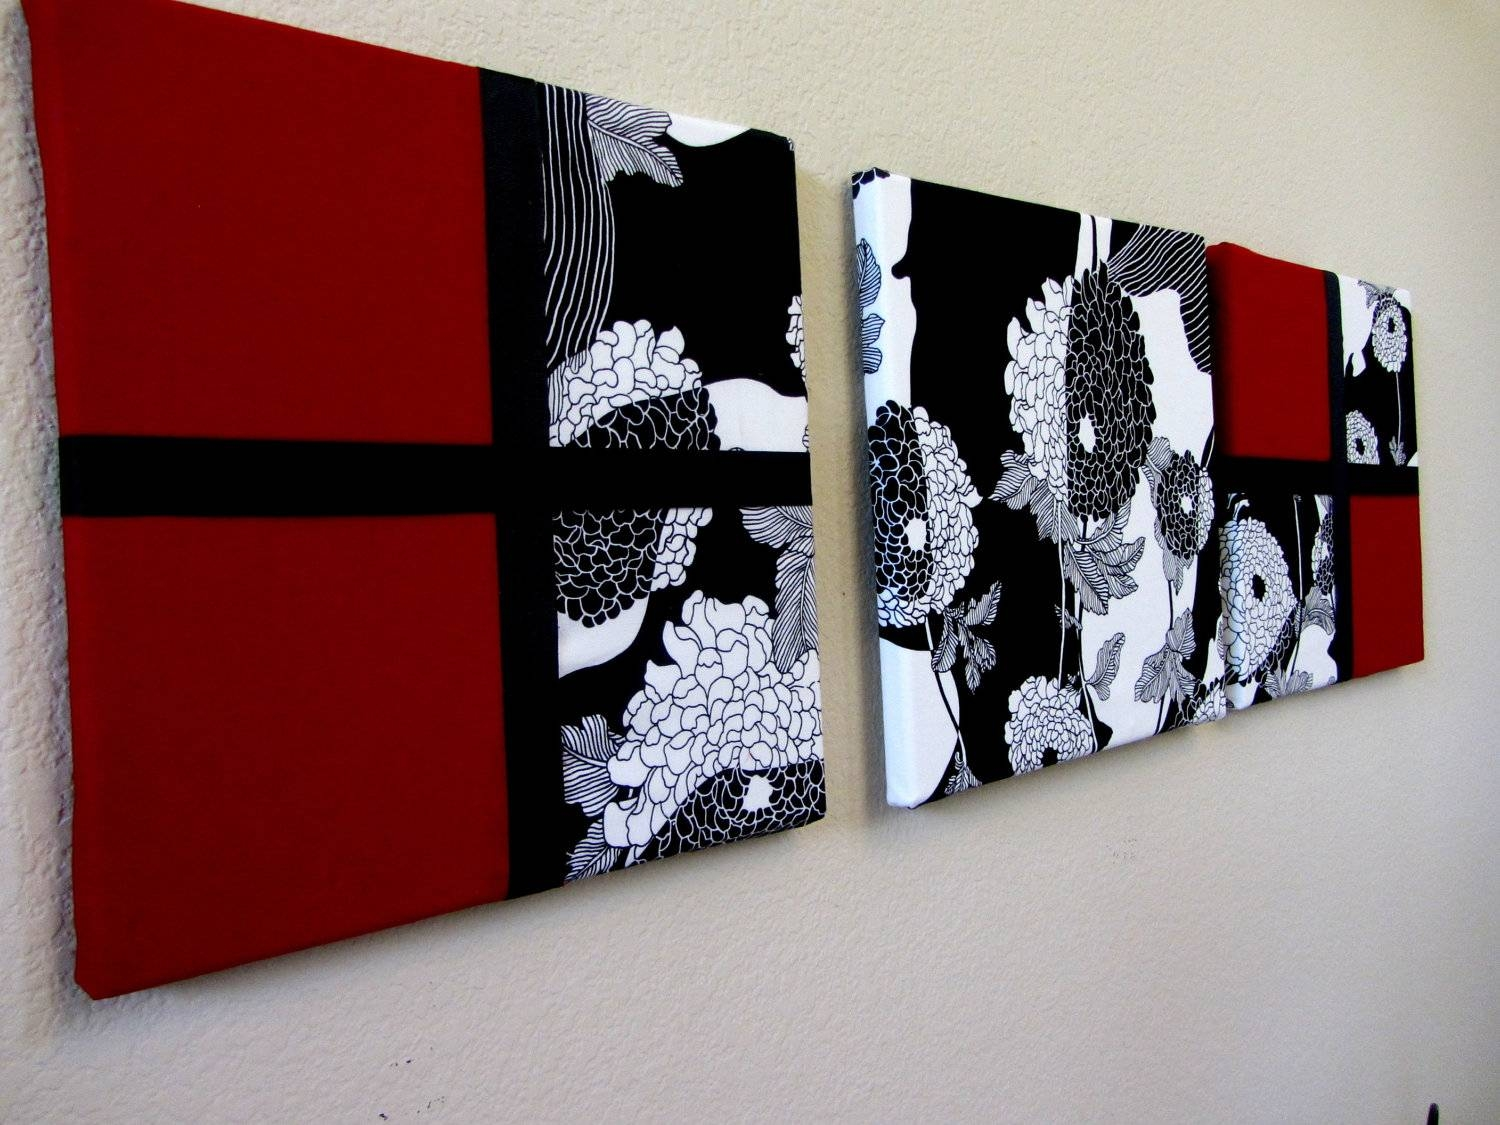 Red Black And White Wall Art 2017 – Grasscloth Wallpaper Intended For 2018 Black White And Red Wall Art (View 5 of 20)